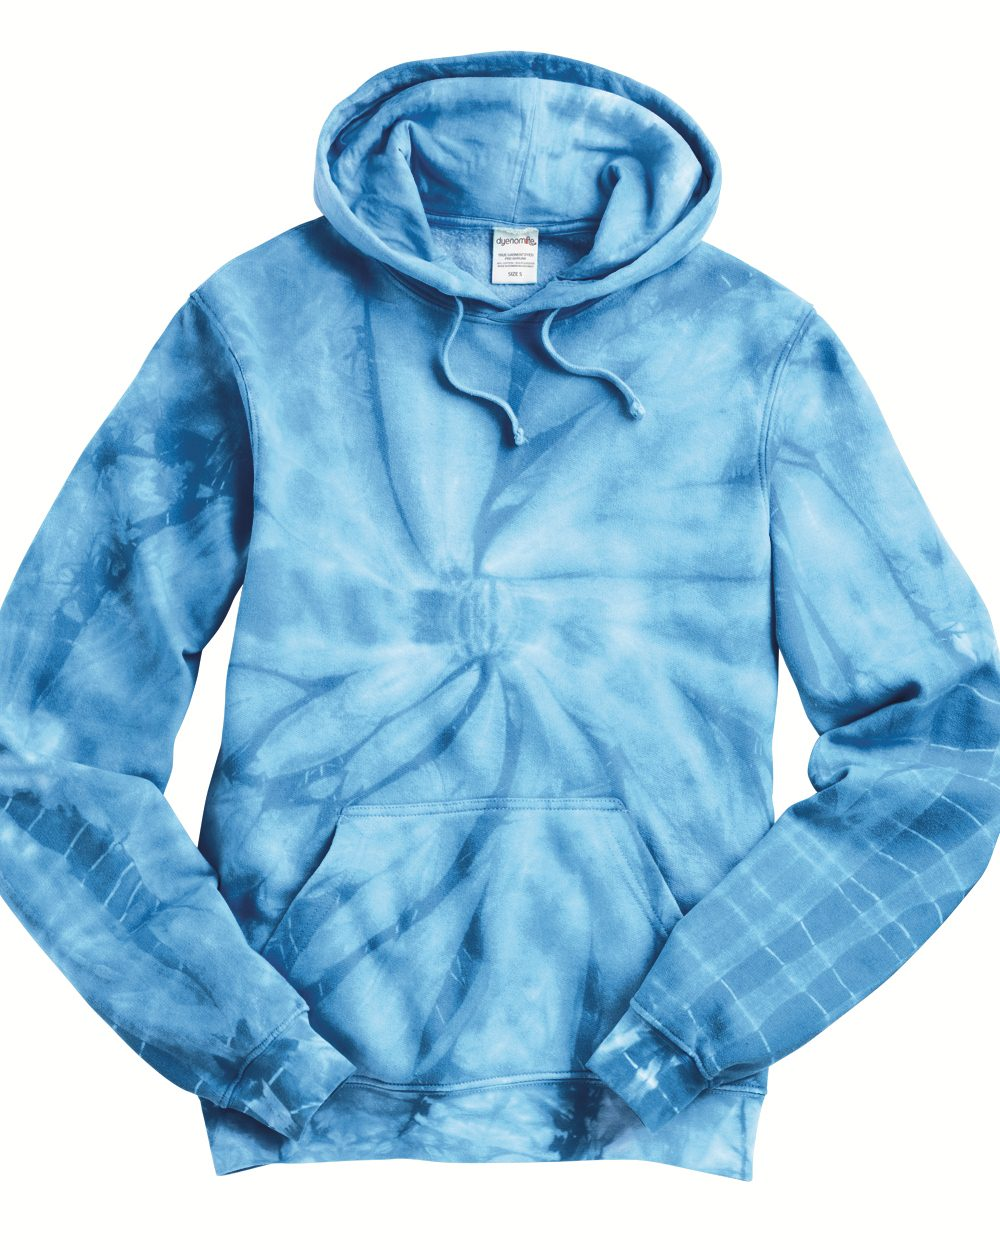 Tie-Dyed 854CY-Cyclone Hooded Sweatshirt